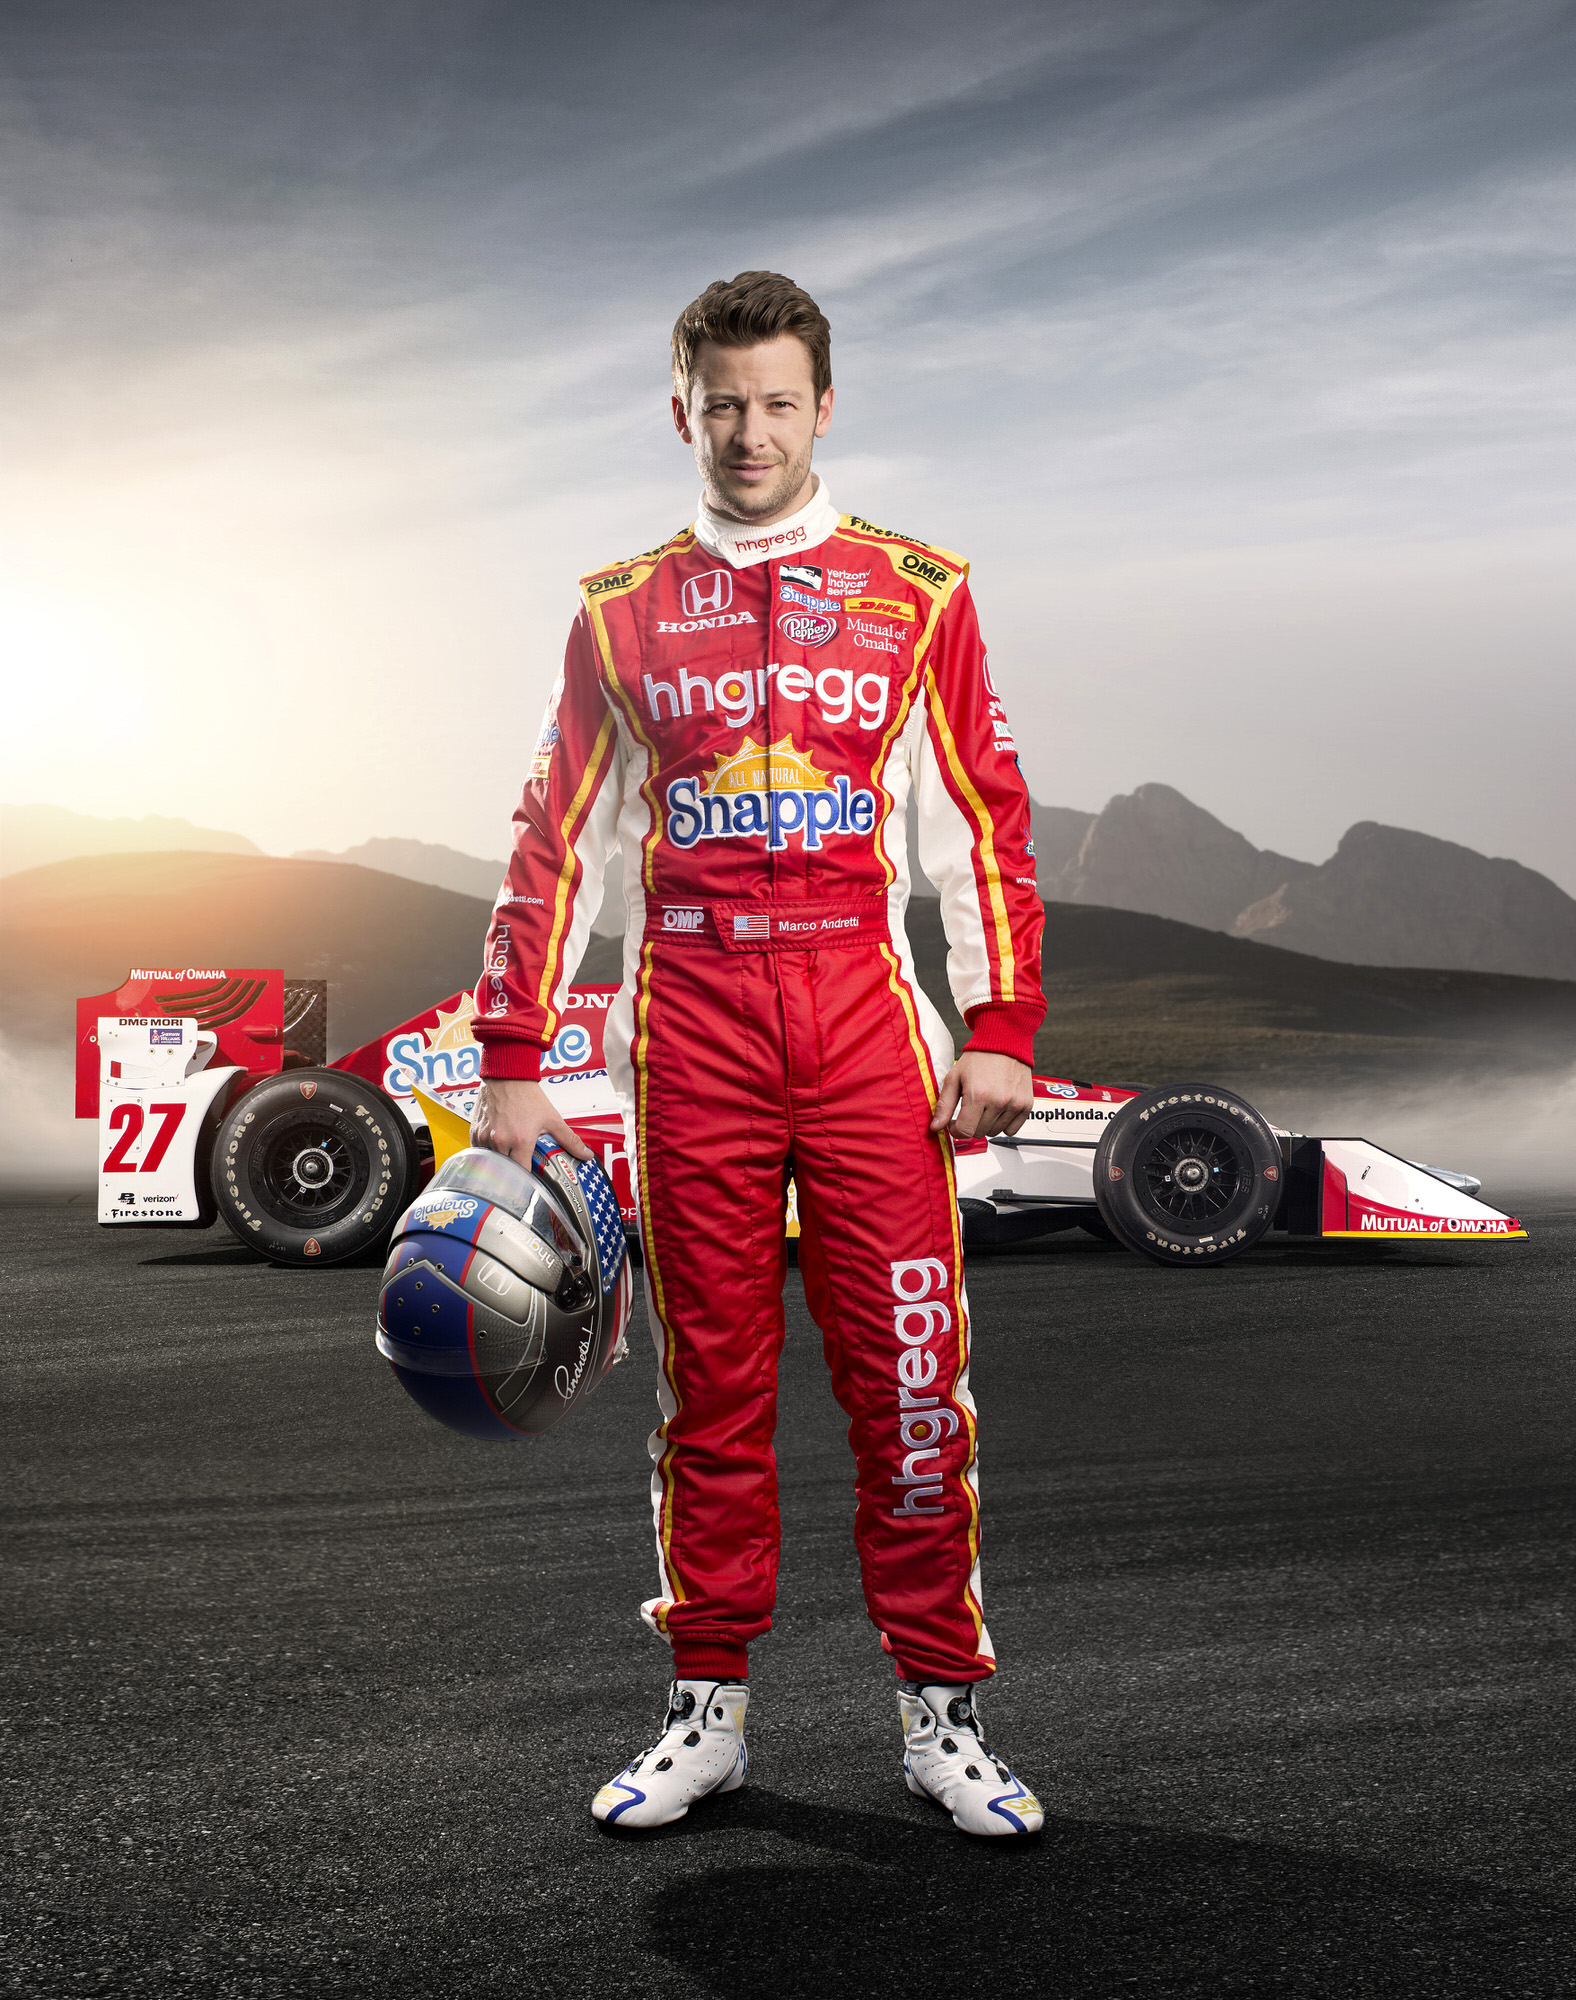 Marco Andretti, driver of the Snapple HHGregg IndyCar